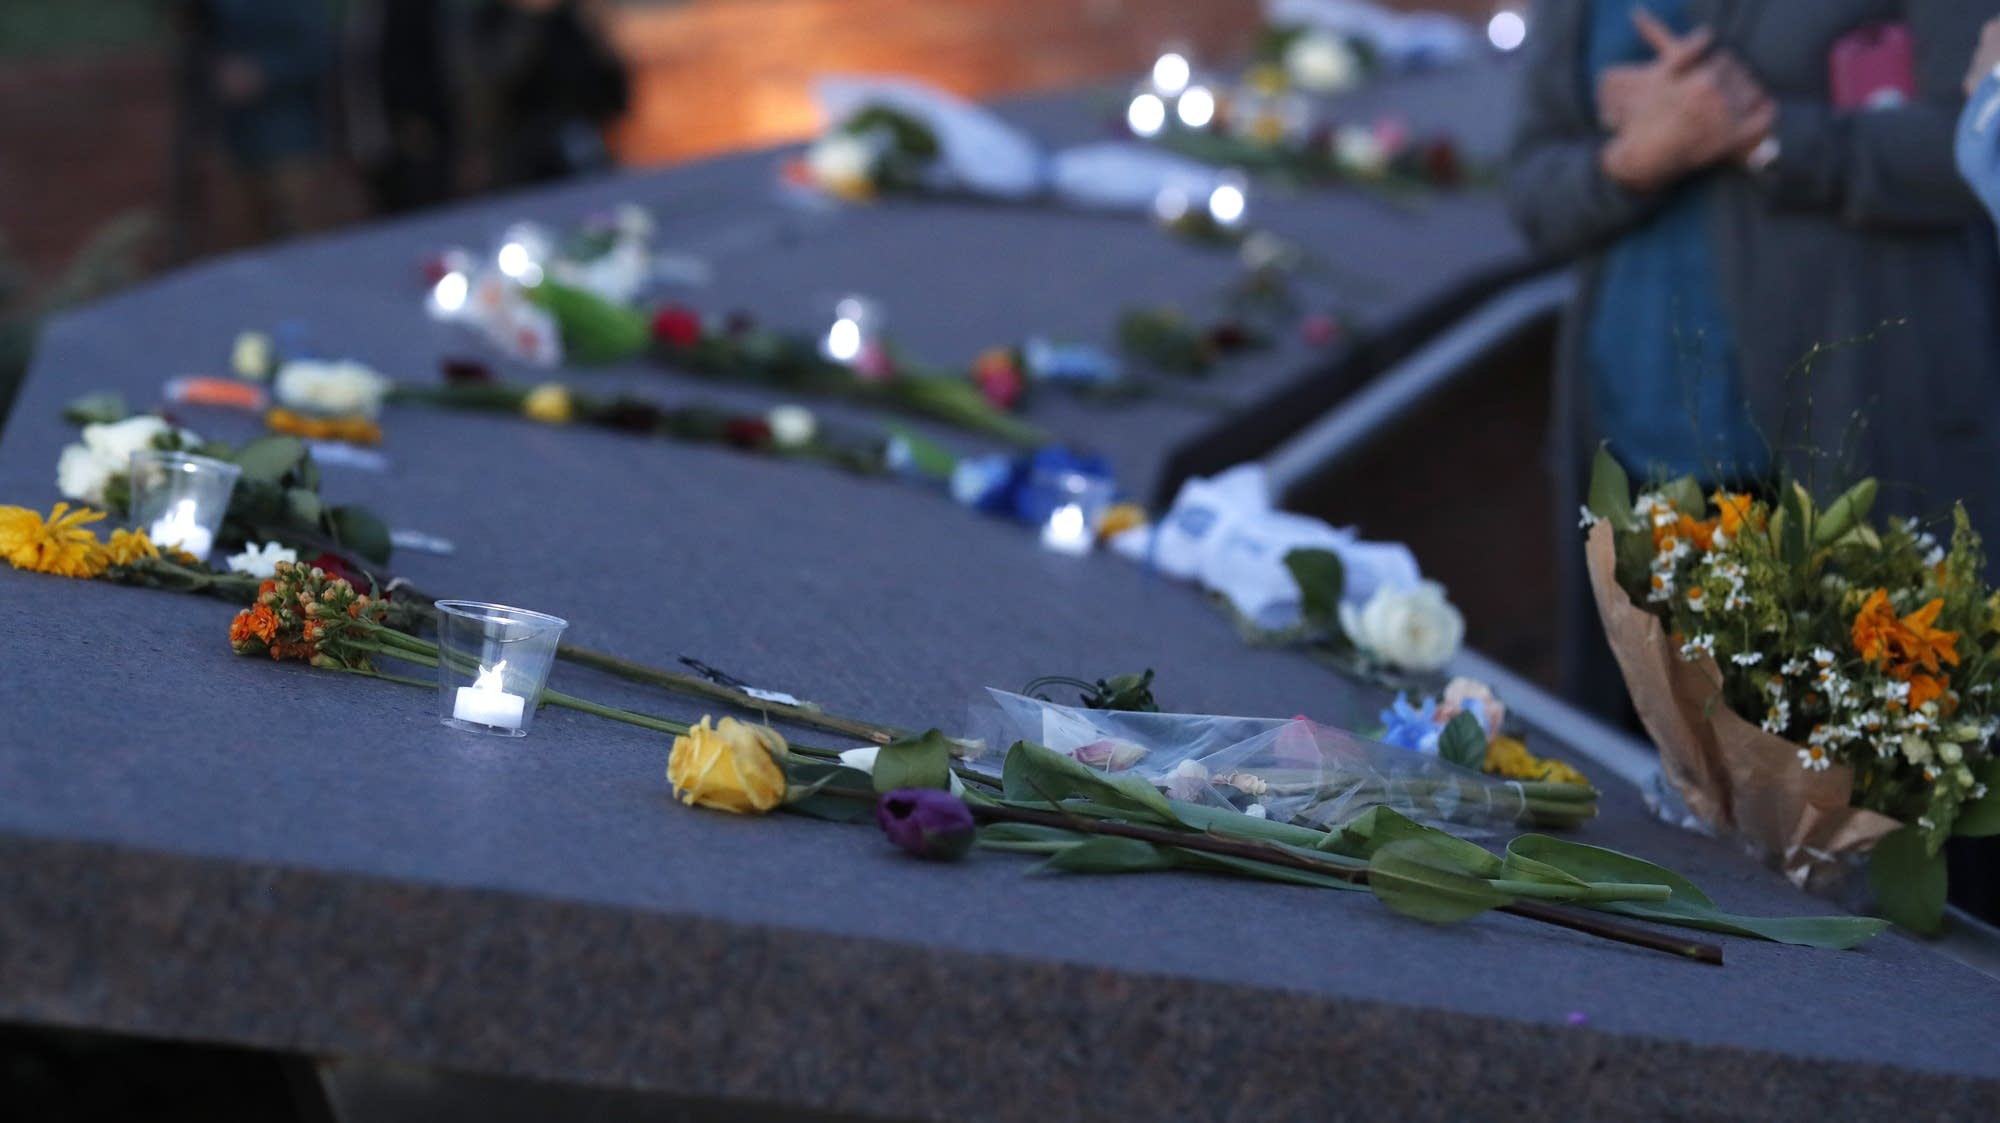 Memorial for the victims of the massacre at Columbine High School